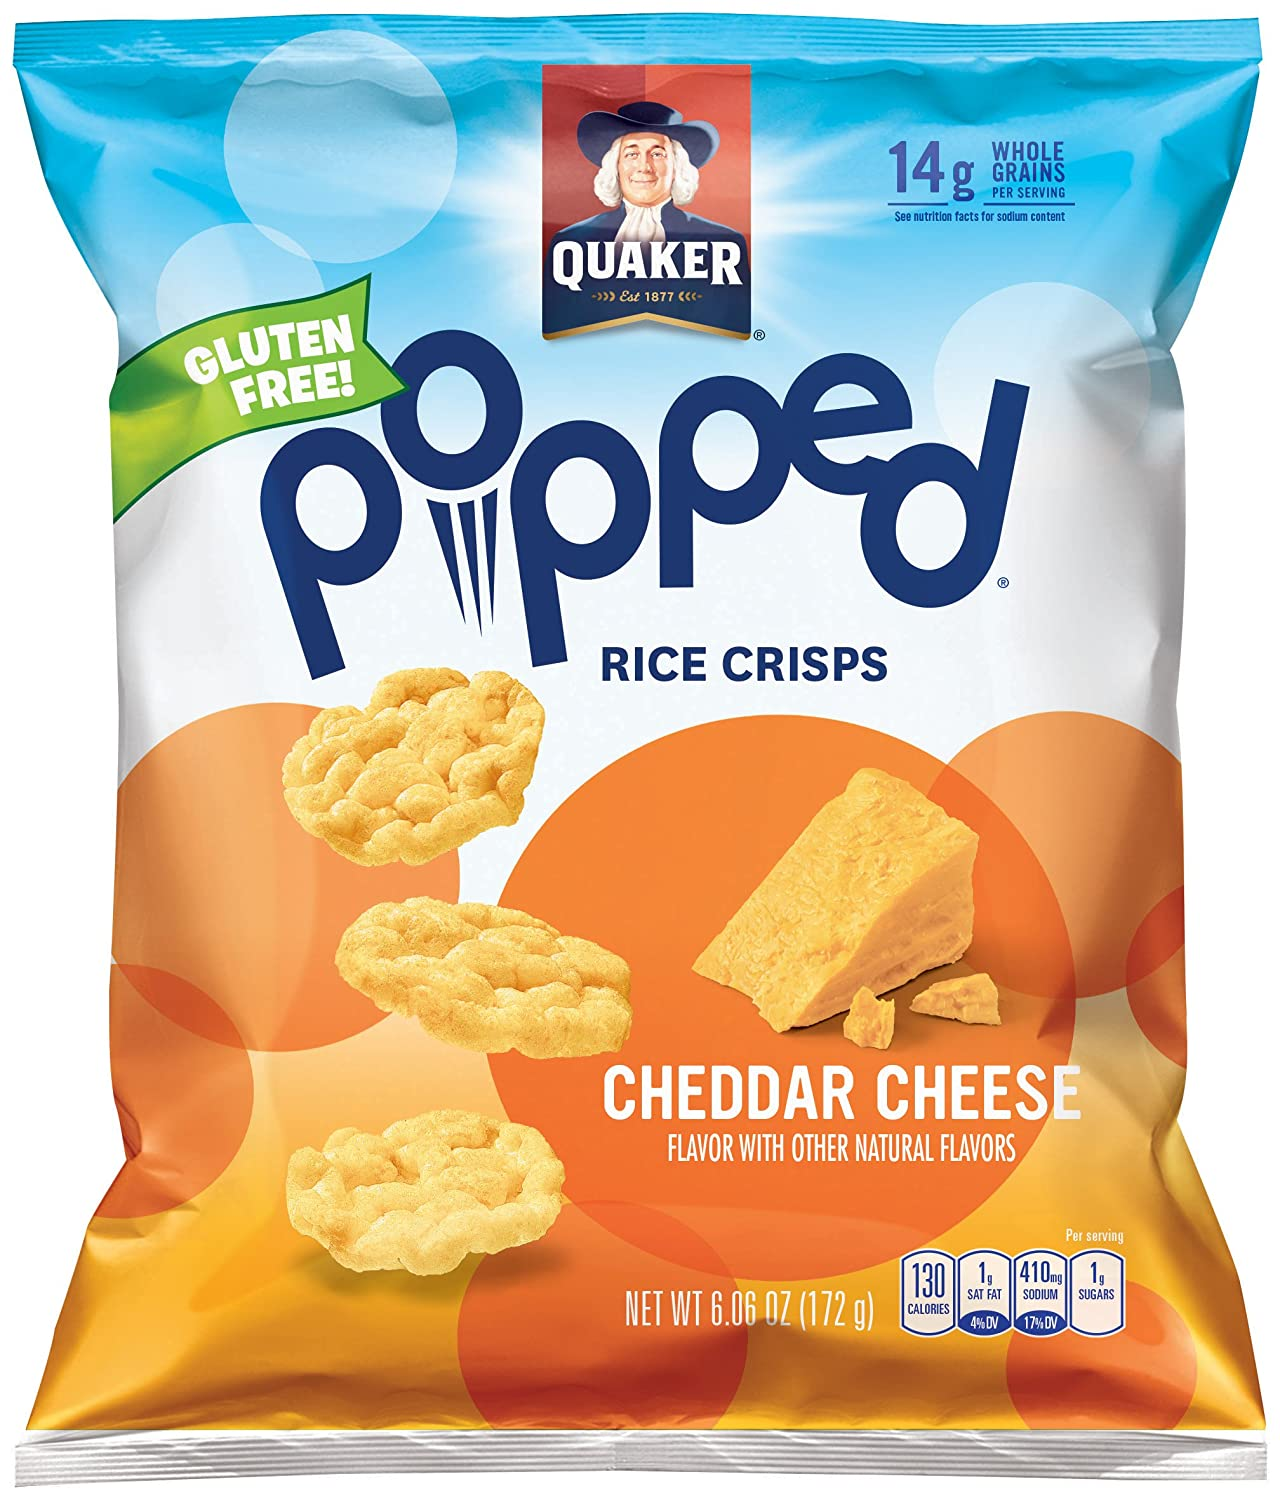 Cheddar Cheese Rice Cakes Nutritional Information